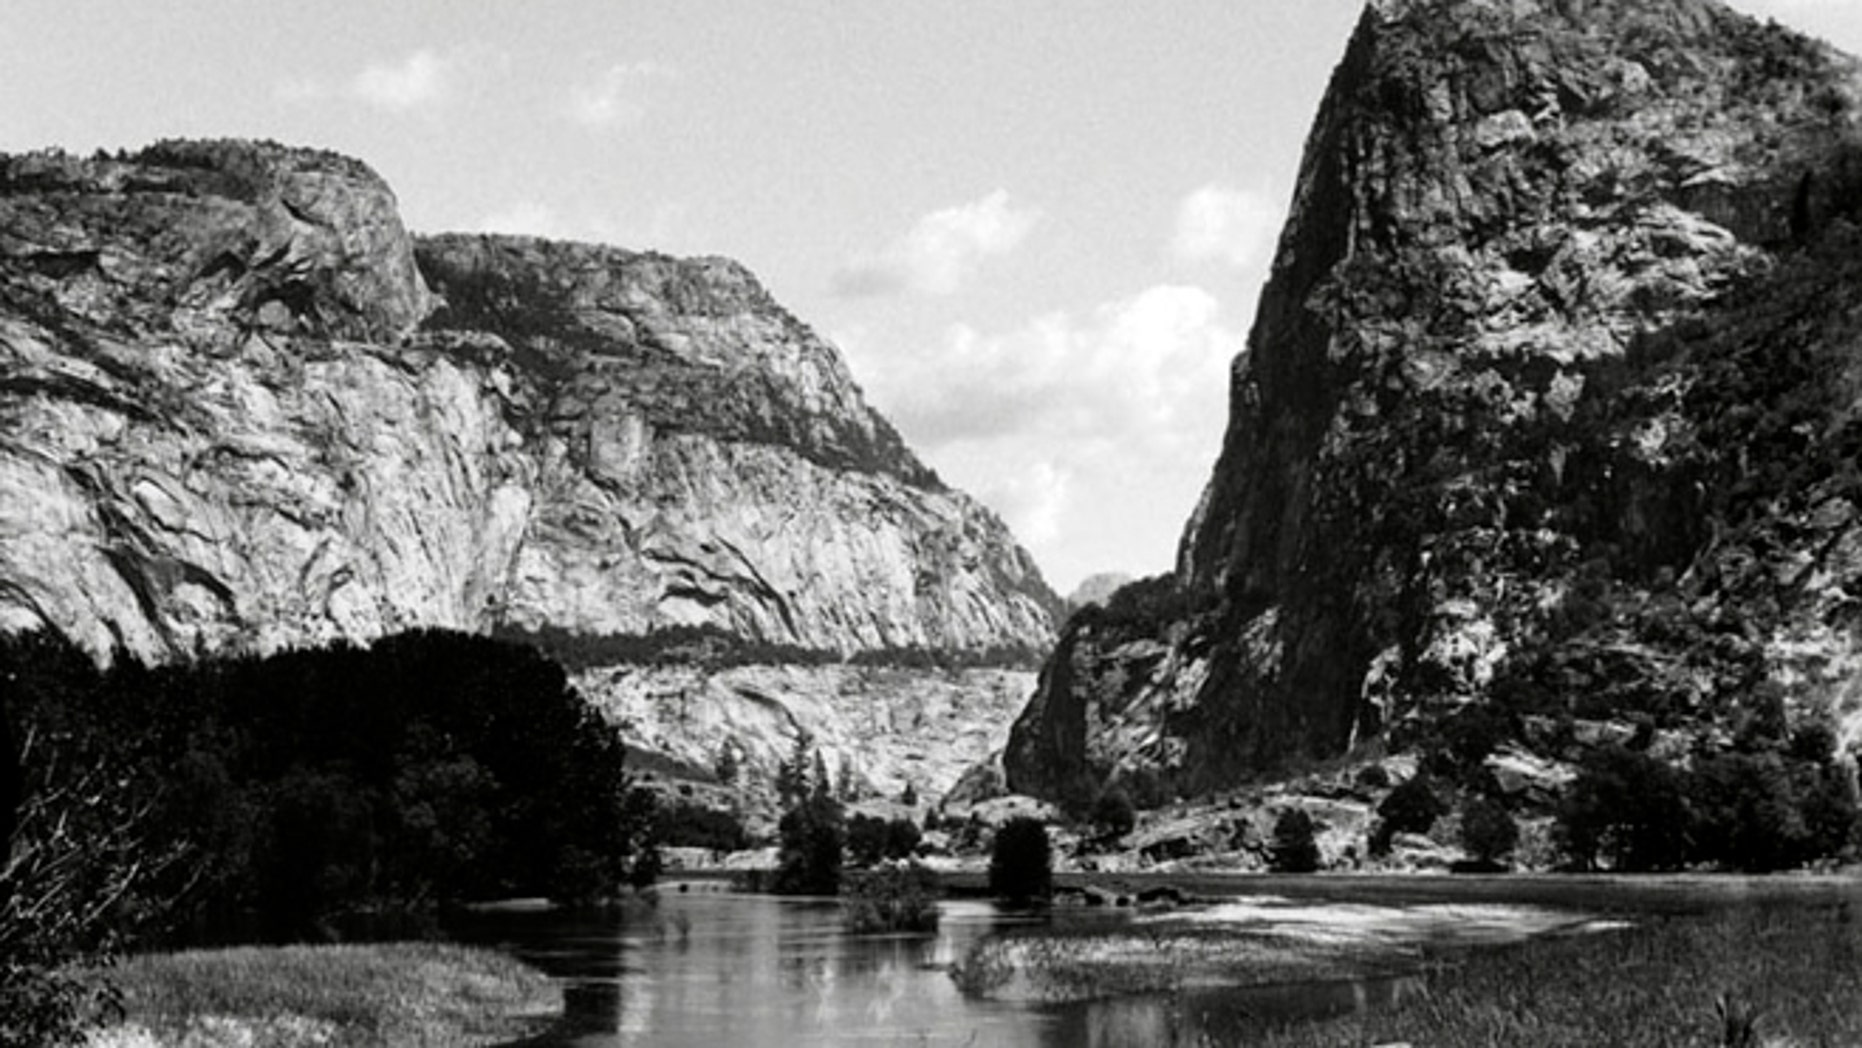 This pre-1913 file photo shows the Hetch Hetchy Valley in Yosemite National Park, Calif.